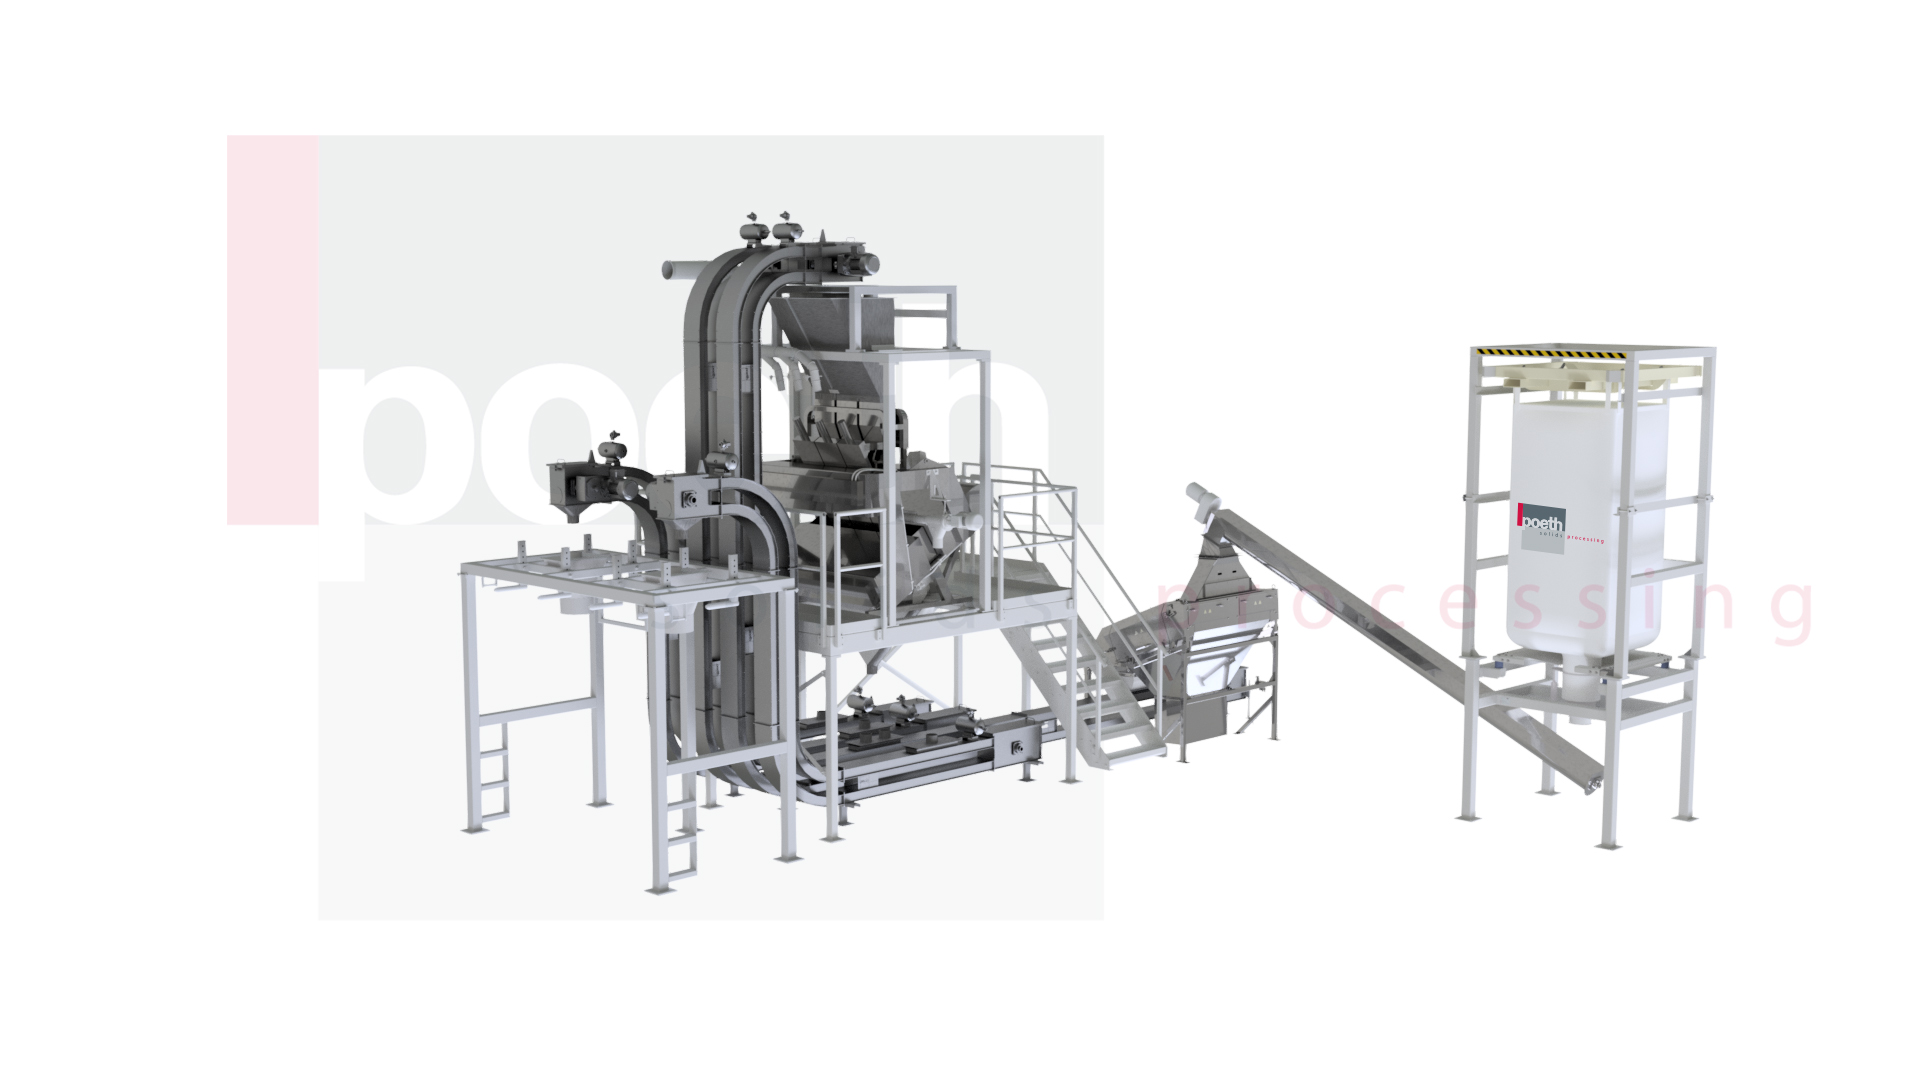 Poeth introduces explosion-proof Mini Z Conveyor for gently transporting powders, grains and granulates: Compact chain conveyor for 0-to-20m3 per hour